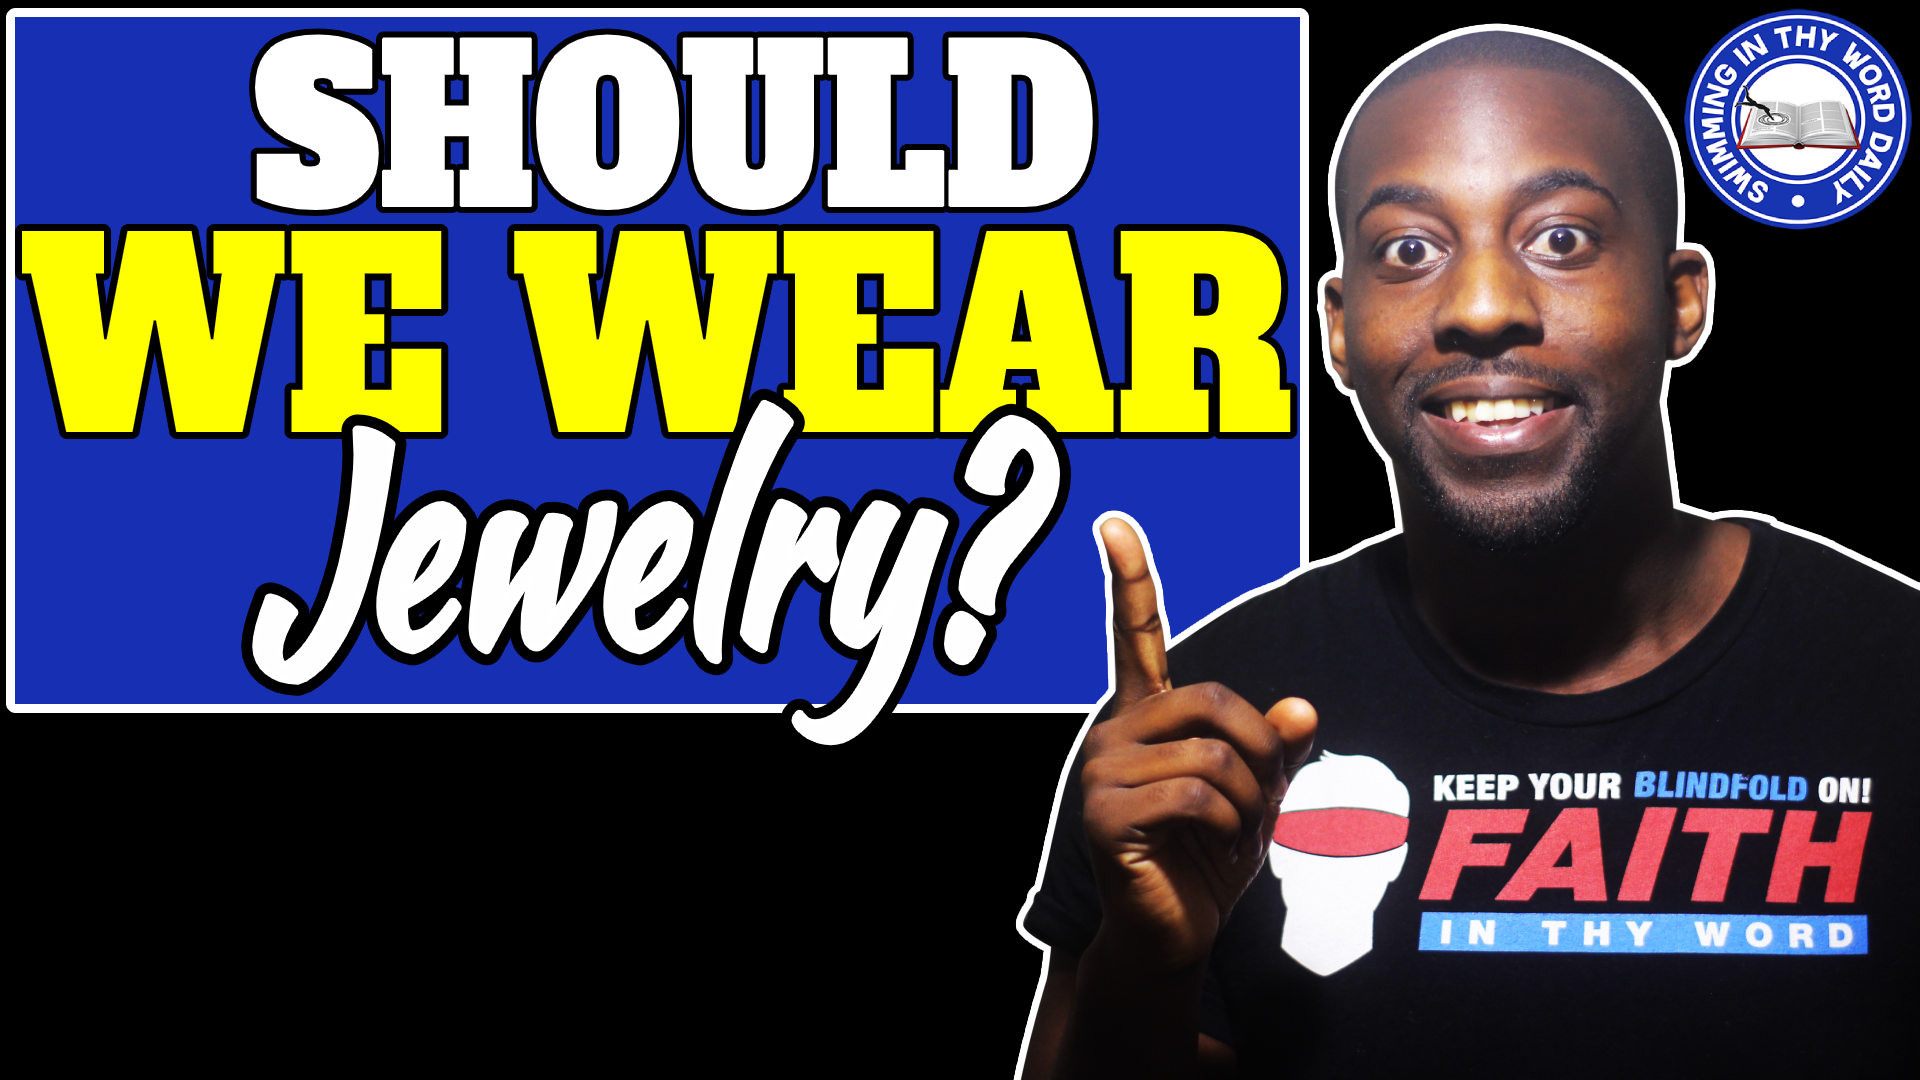 Should a Christian Wear Jewelry